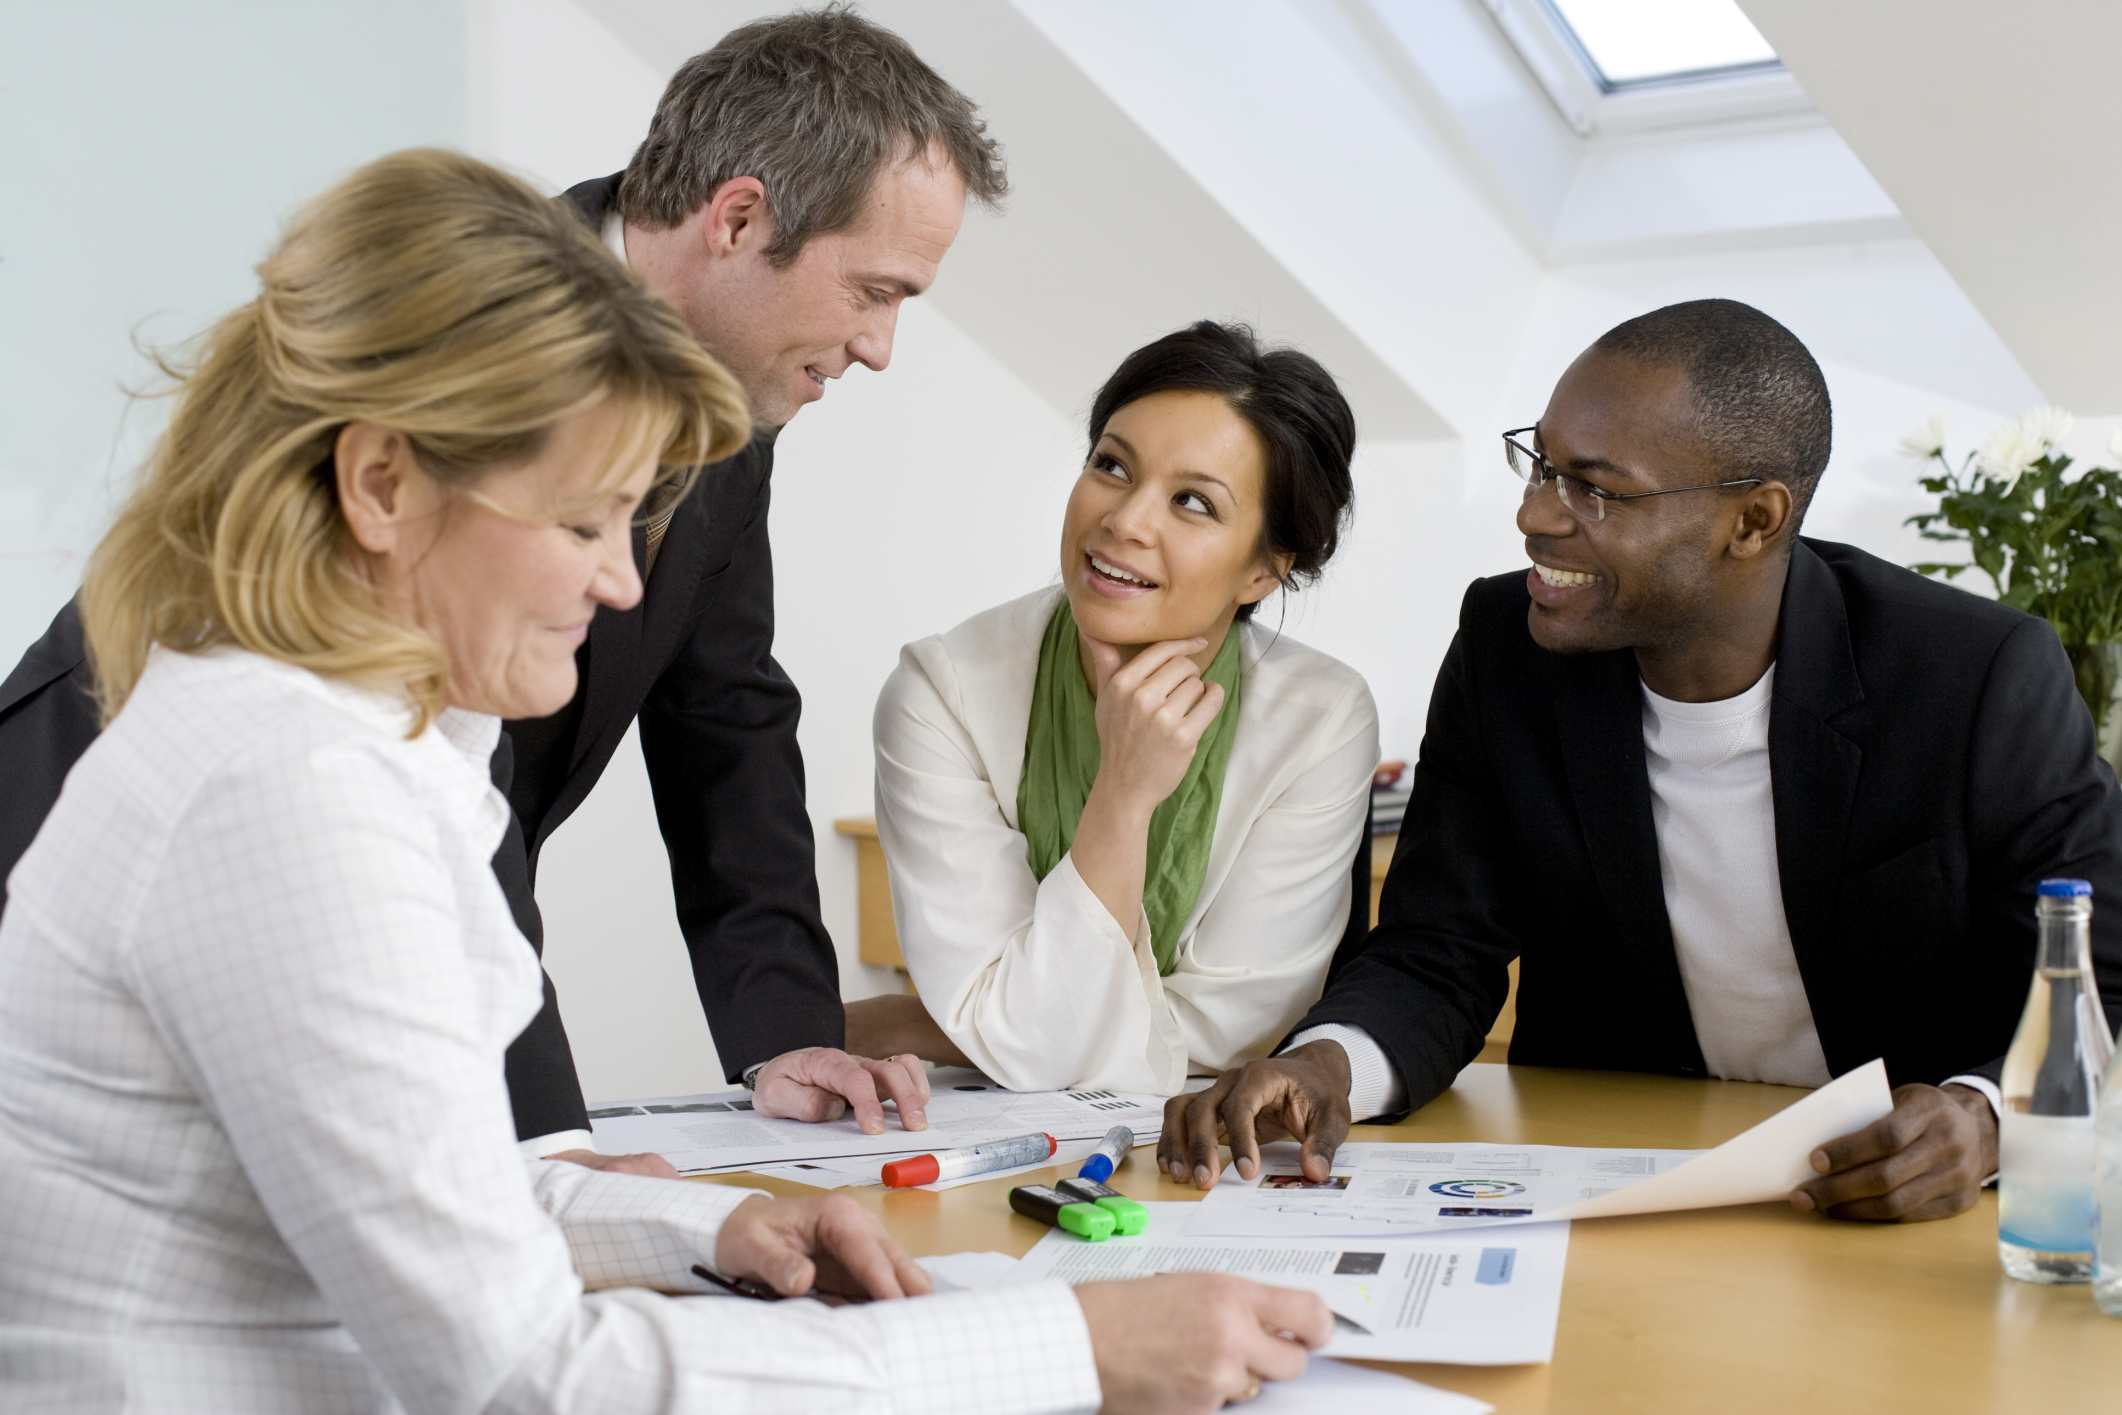 Employees meeting in a typical workplace and these employees are empowered to make a difference.